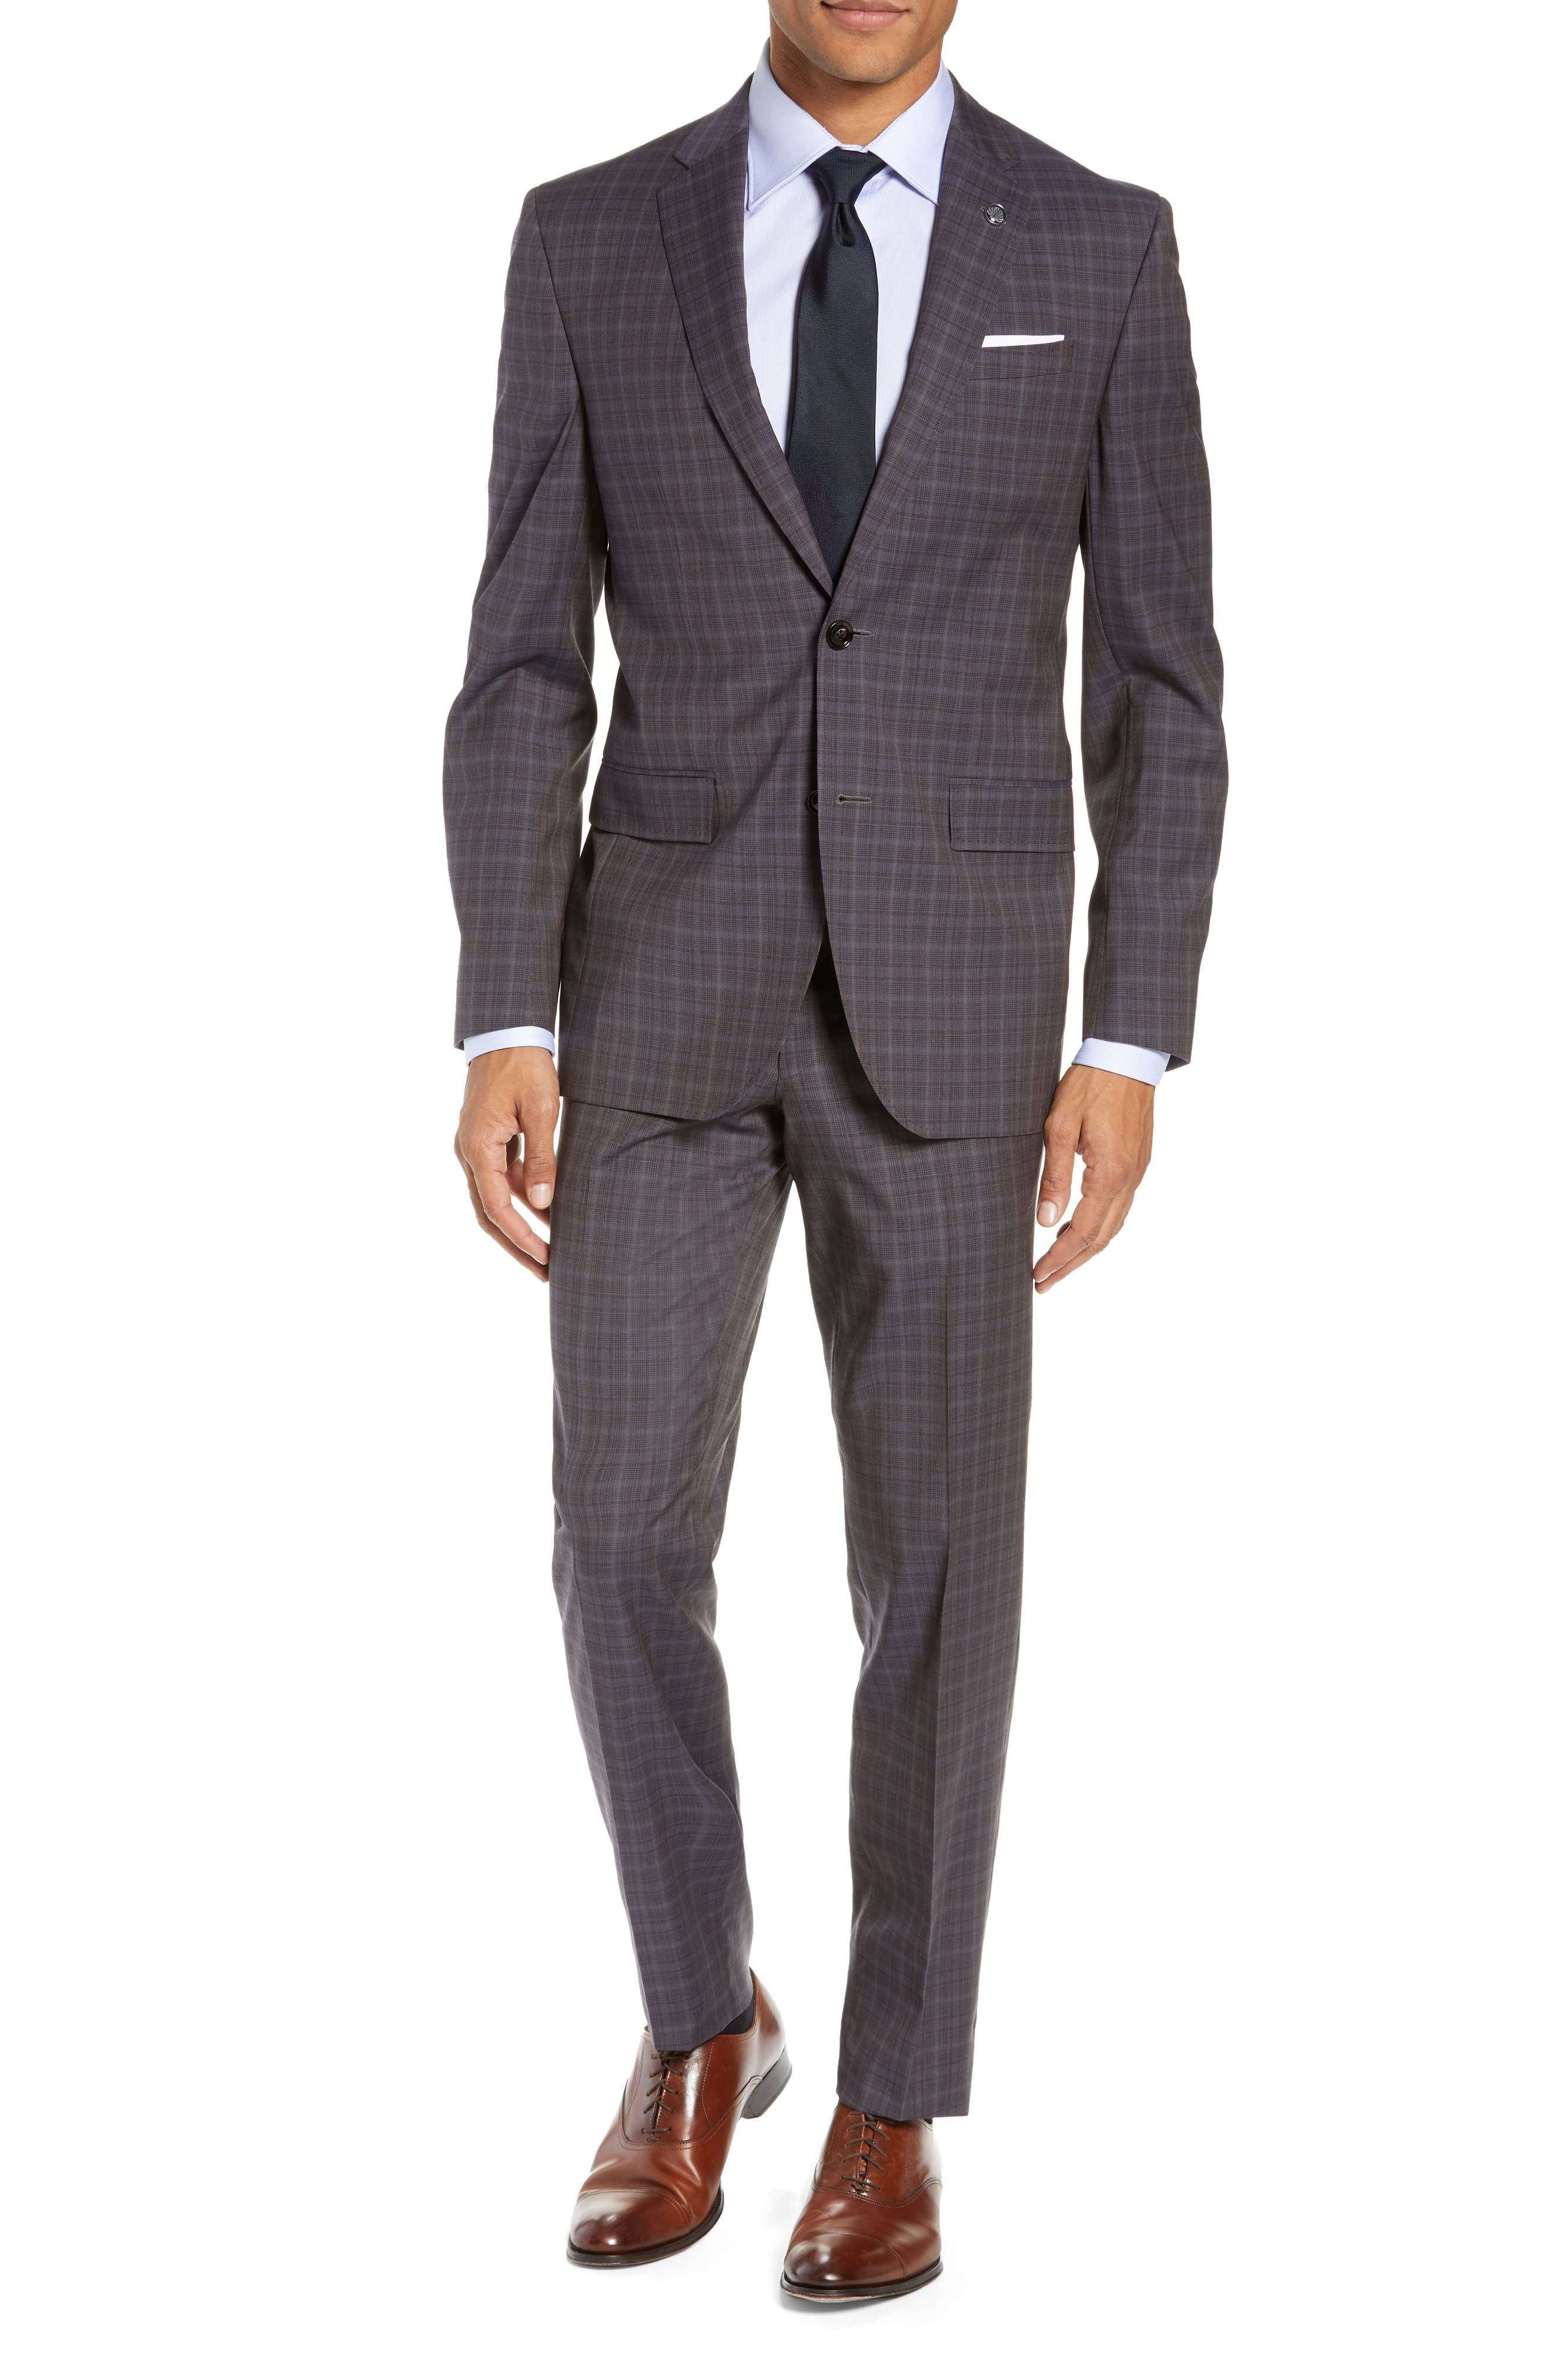 TED BAKER LONDON,                             Jay Trim Fit Plaid Wool Suit,                             Main thumbnail 1, color,                             TAUPE